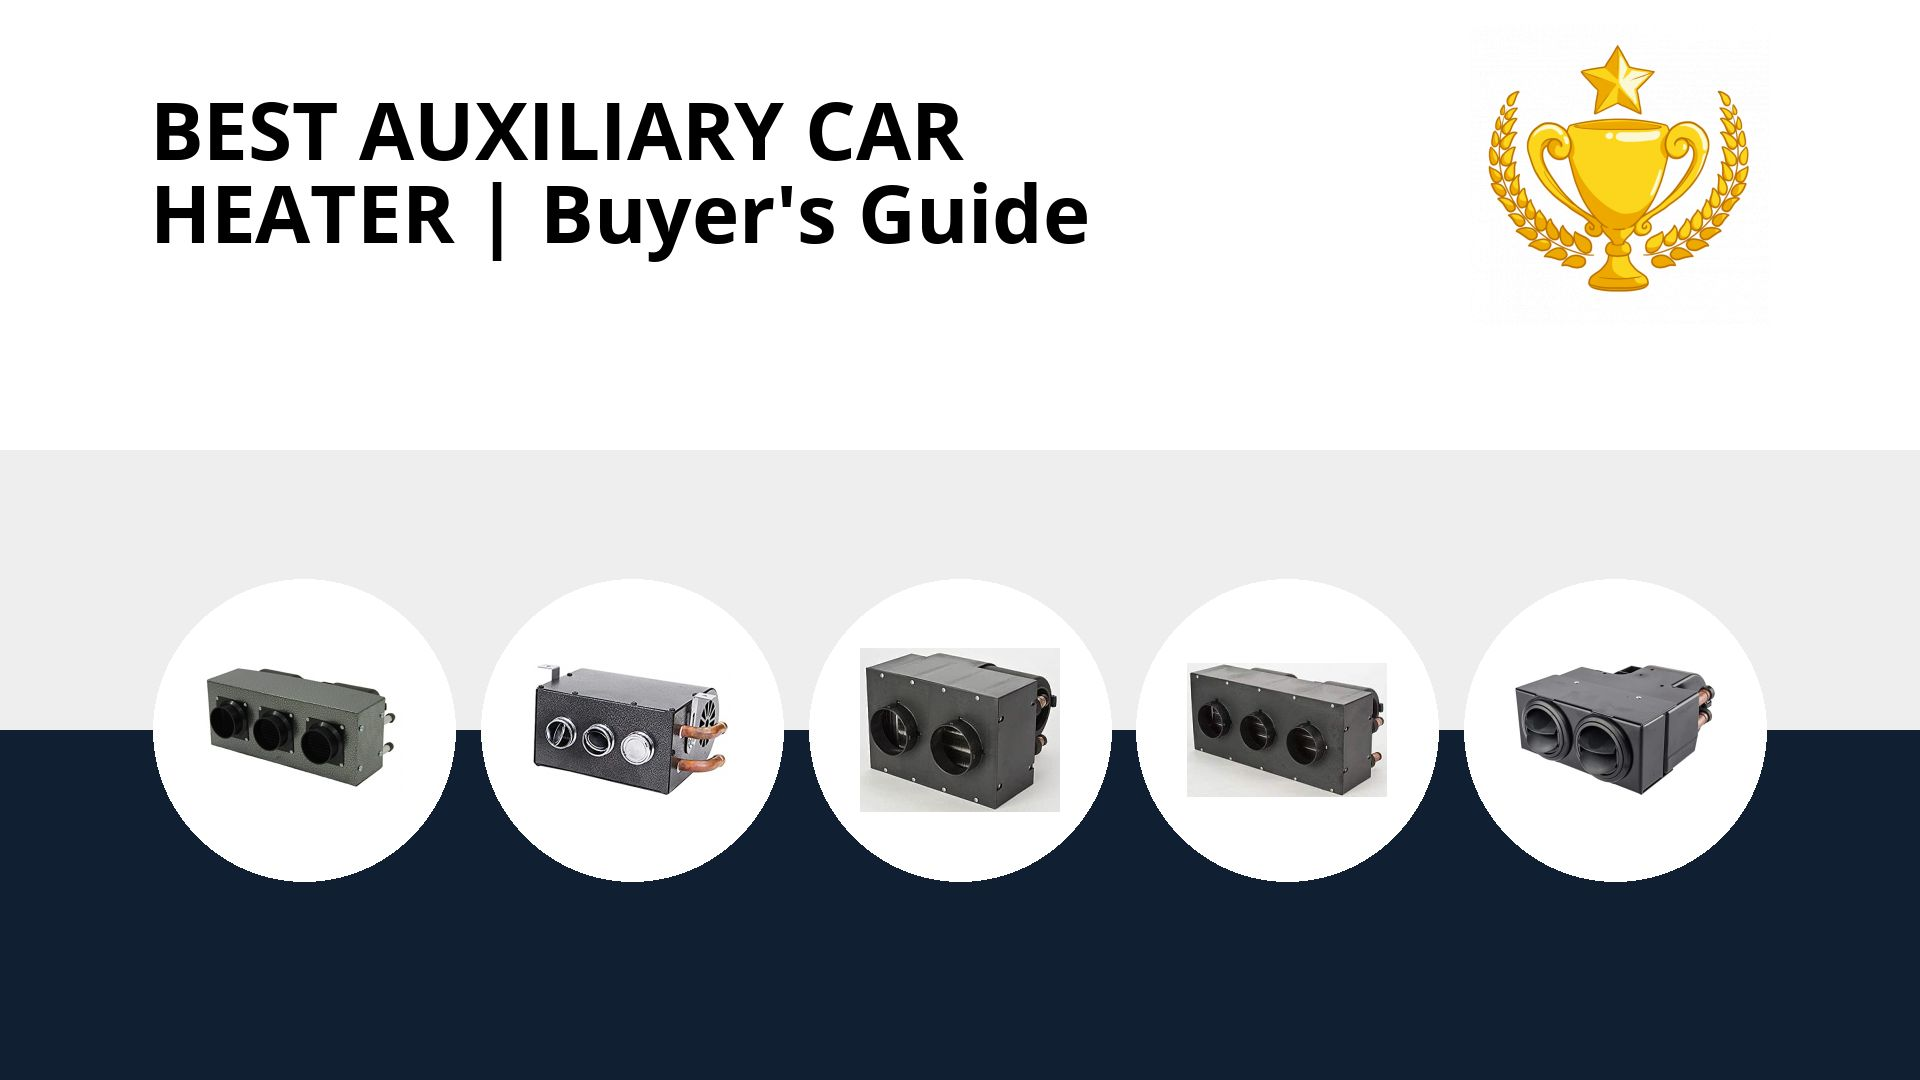 Best Auxiliary Car Heater: image